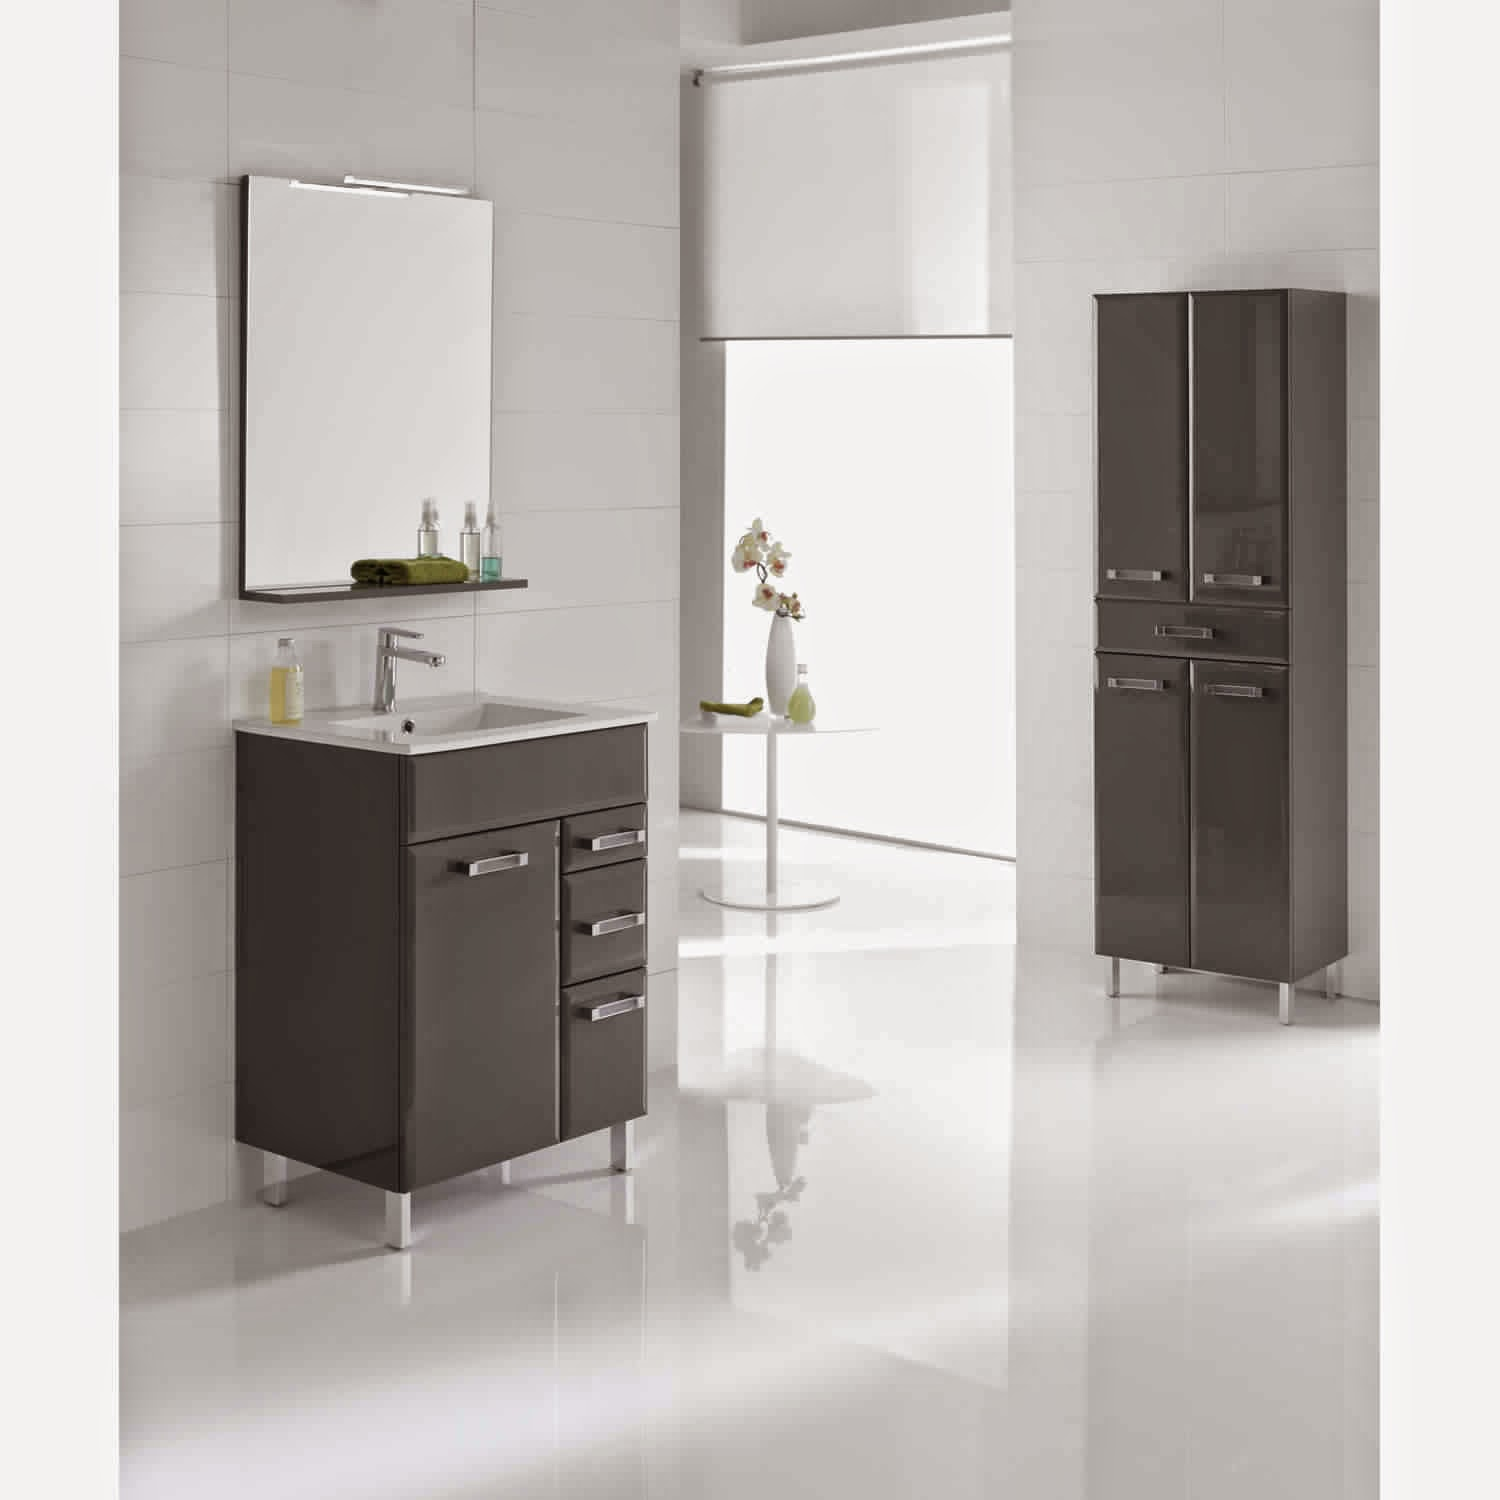 finest excellent bricorama meuble cuisine meuble salle de bain bambou u chaios with baignoire d. Black Bedroom Furniture Sets. Home Design Ideas